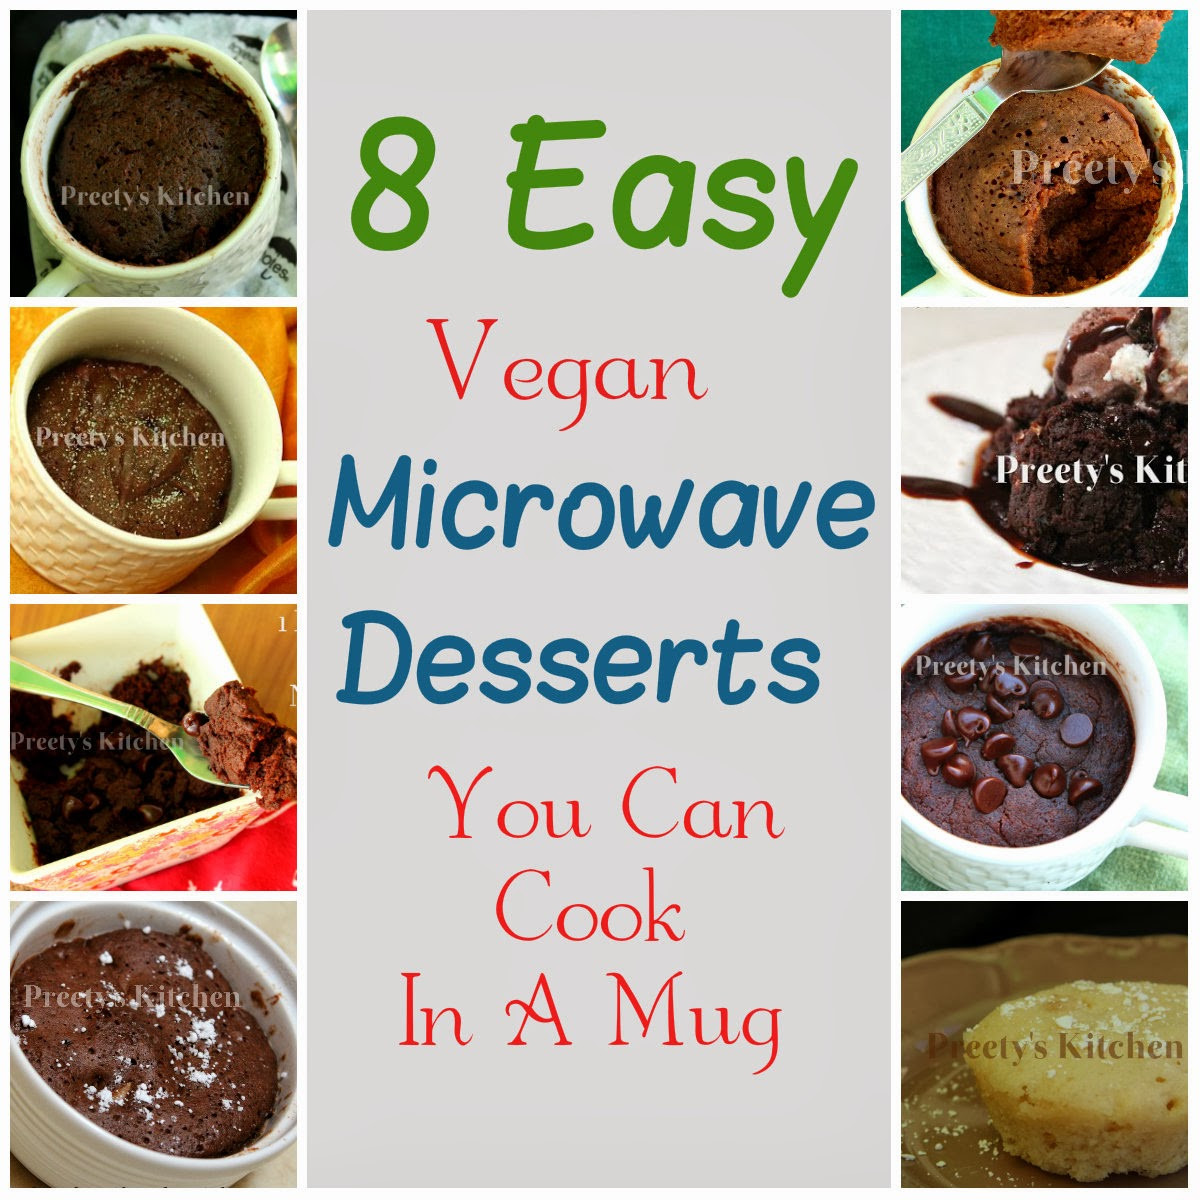 Microwave Dessert In A Mug  Preety s Kitchen 8 Easy Vegan Microwave Desserts You Can